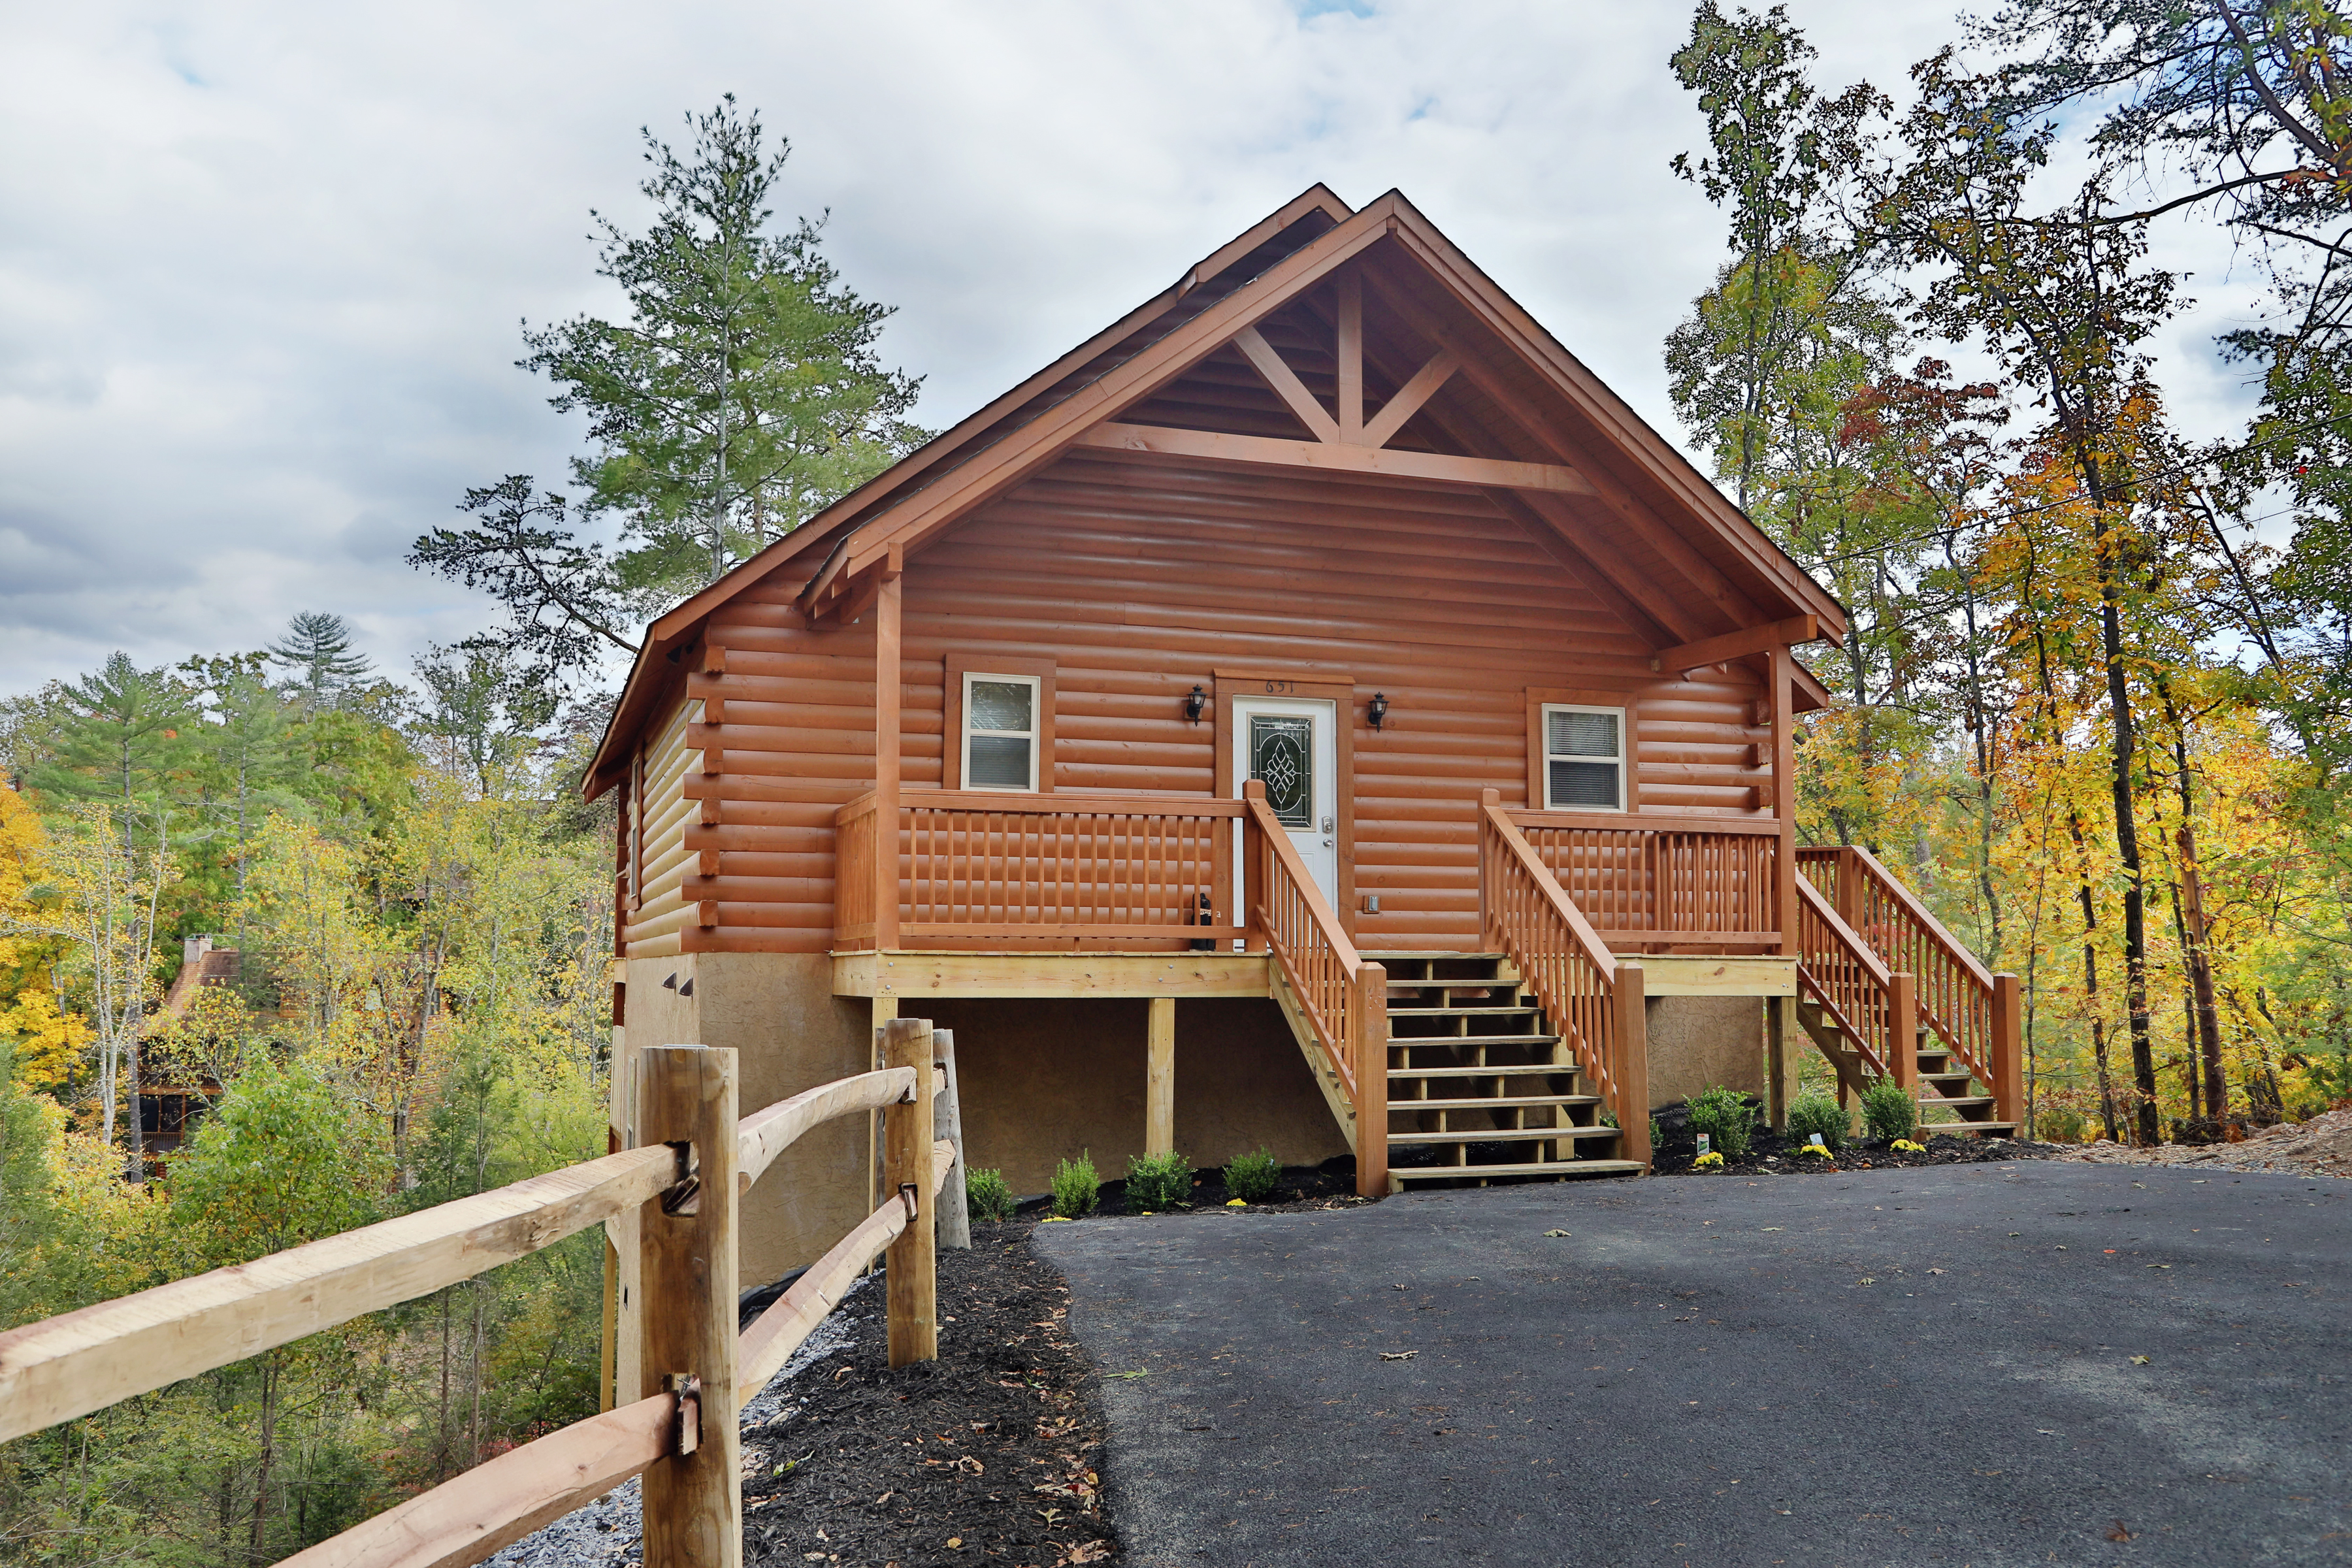 New 2BR Cabin w/ Hot Tub & Home Theater | TurnKey